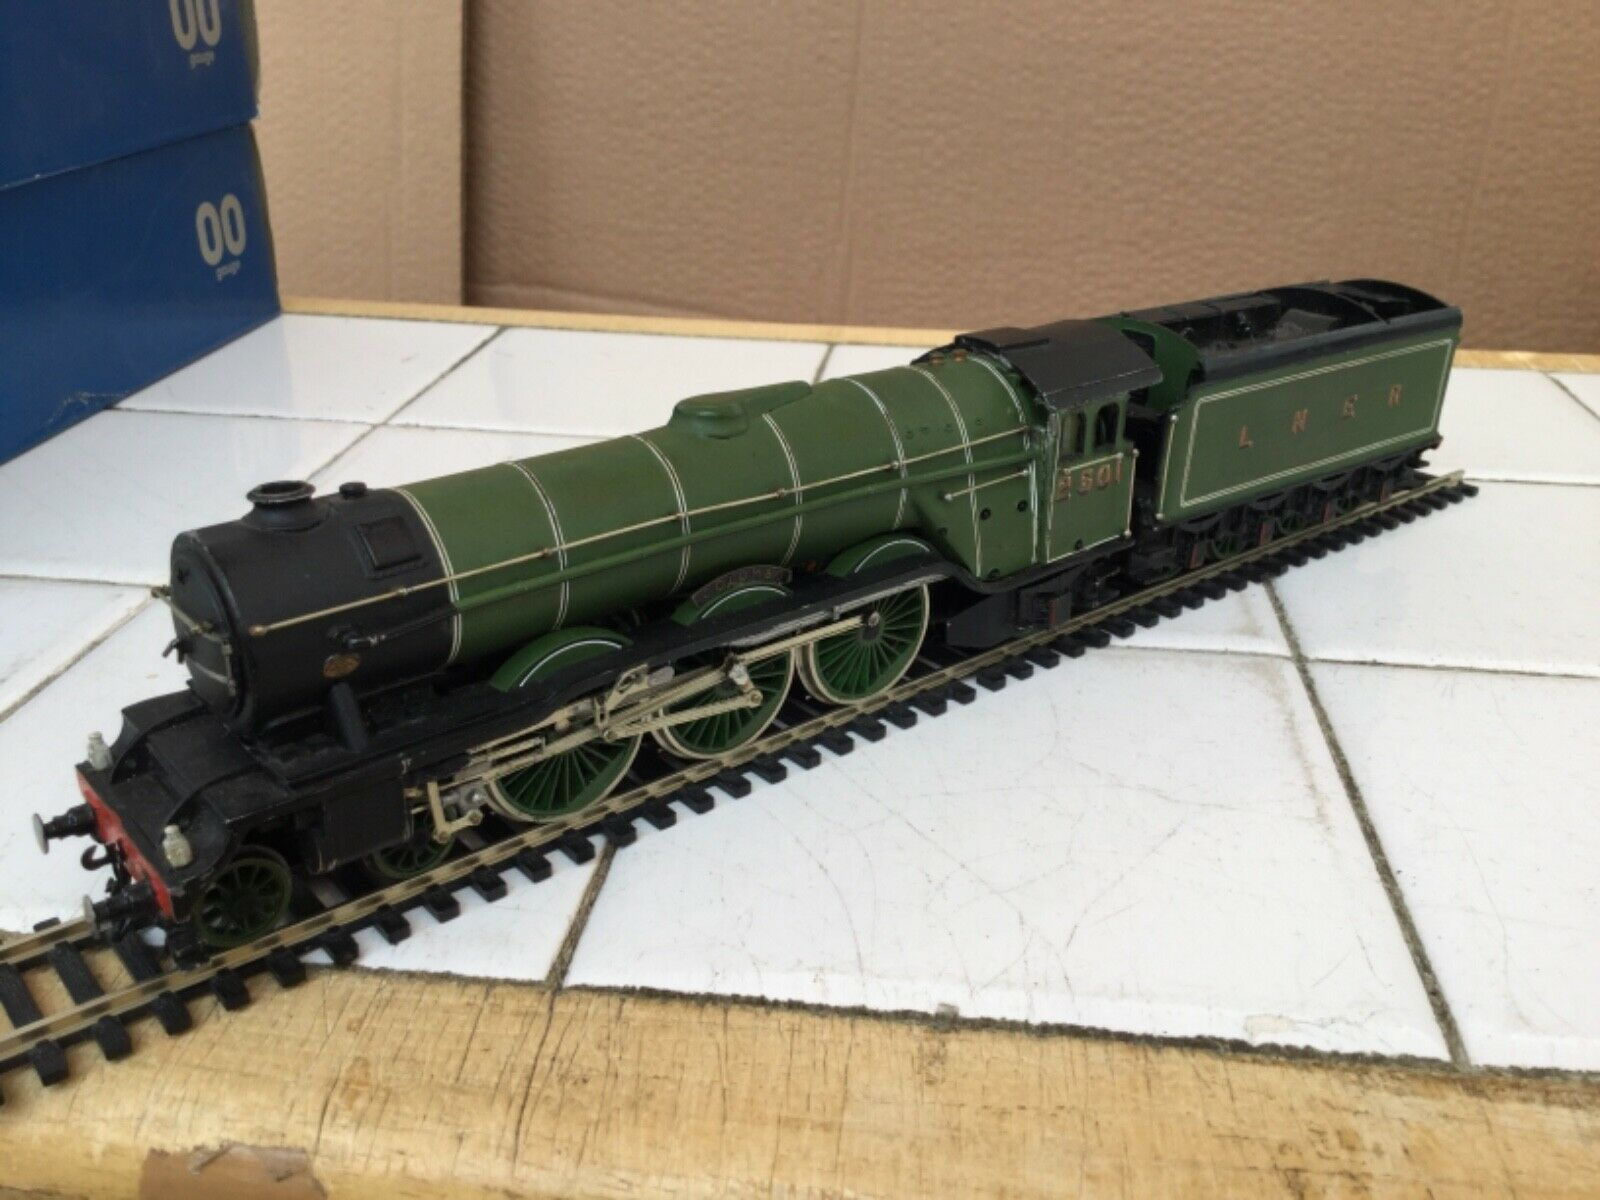 Kit Built OO Gauge LNER 4-6-2 A3 class Loco 2501 Colombo